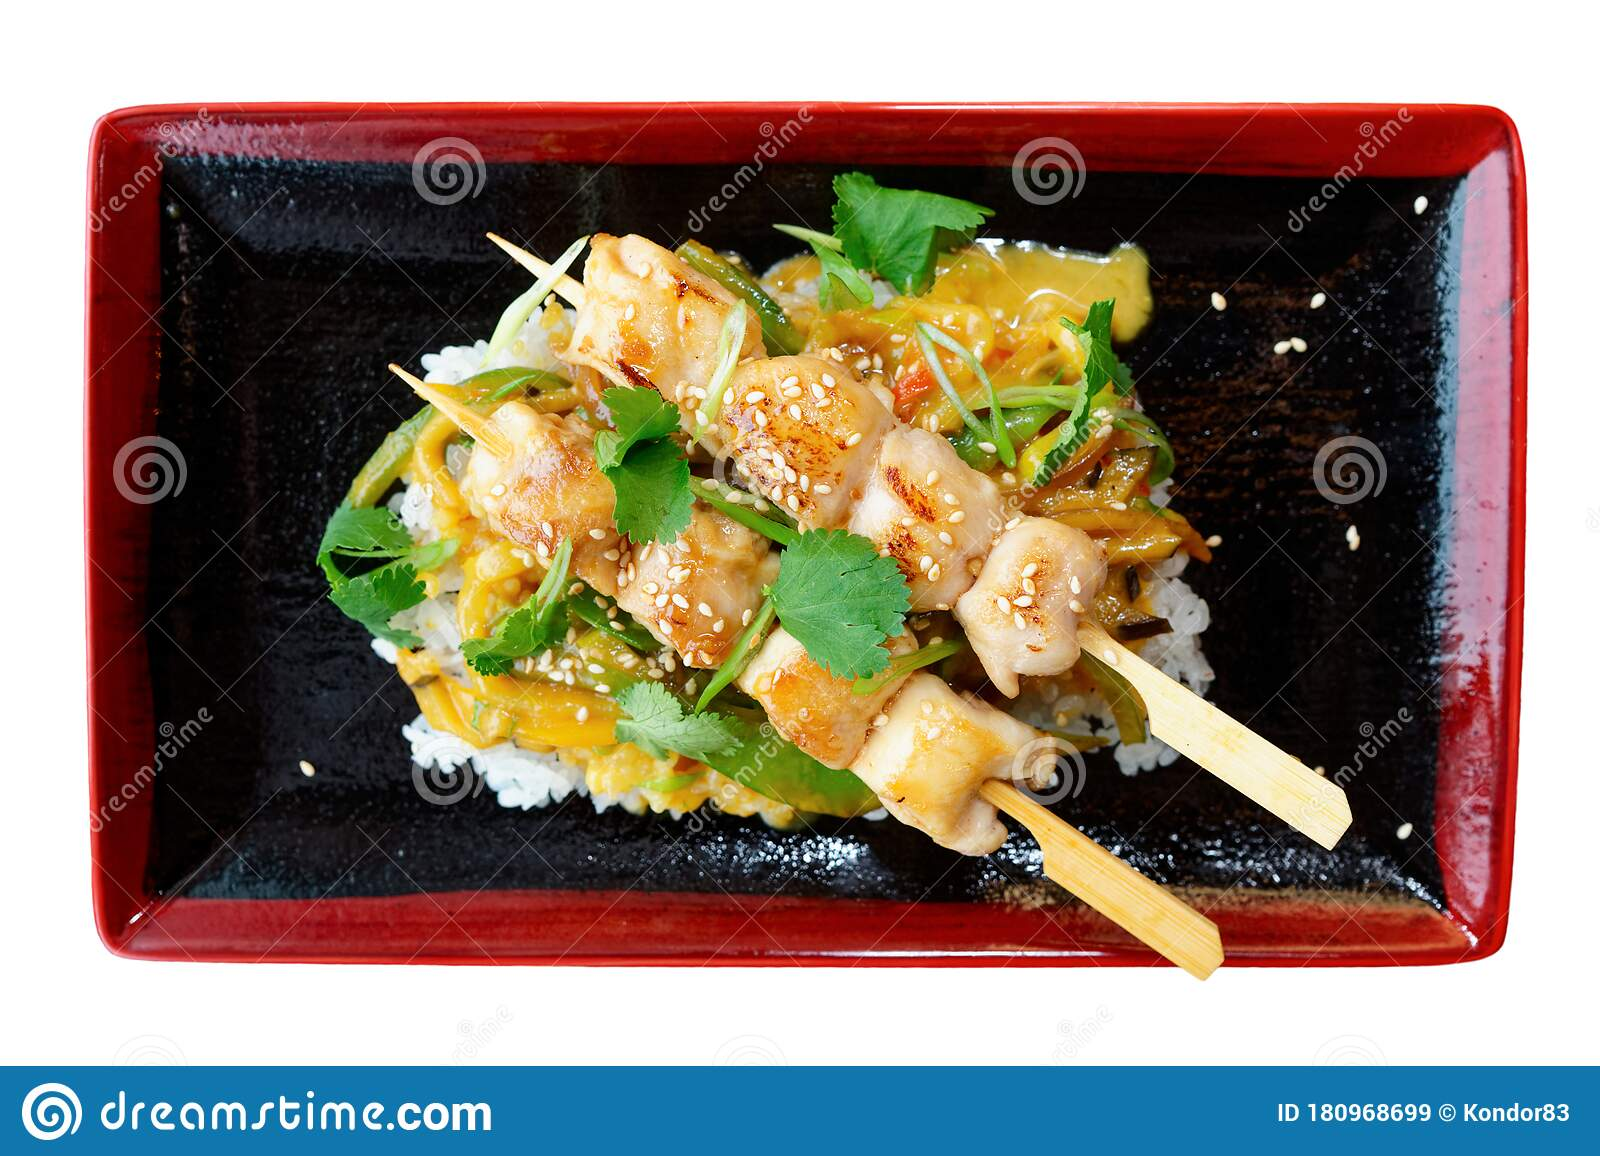 Teriyaki Chicken With Rice Isolated On White Stock Image Image Of Sesame Chicken 180968699